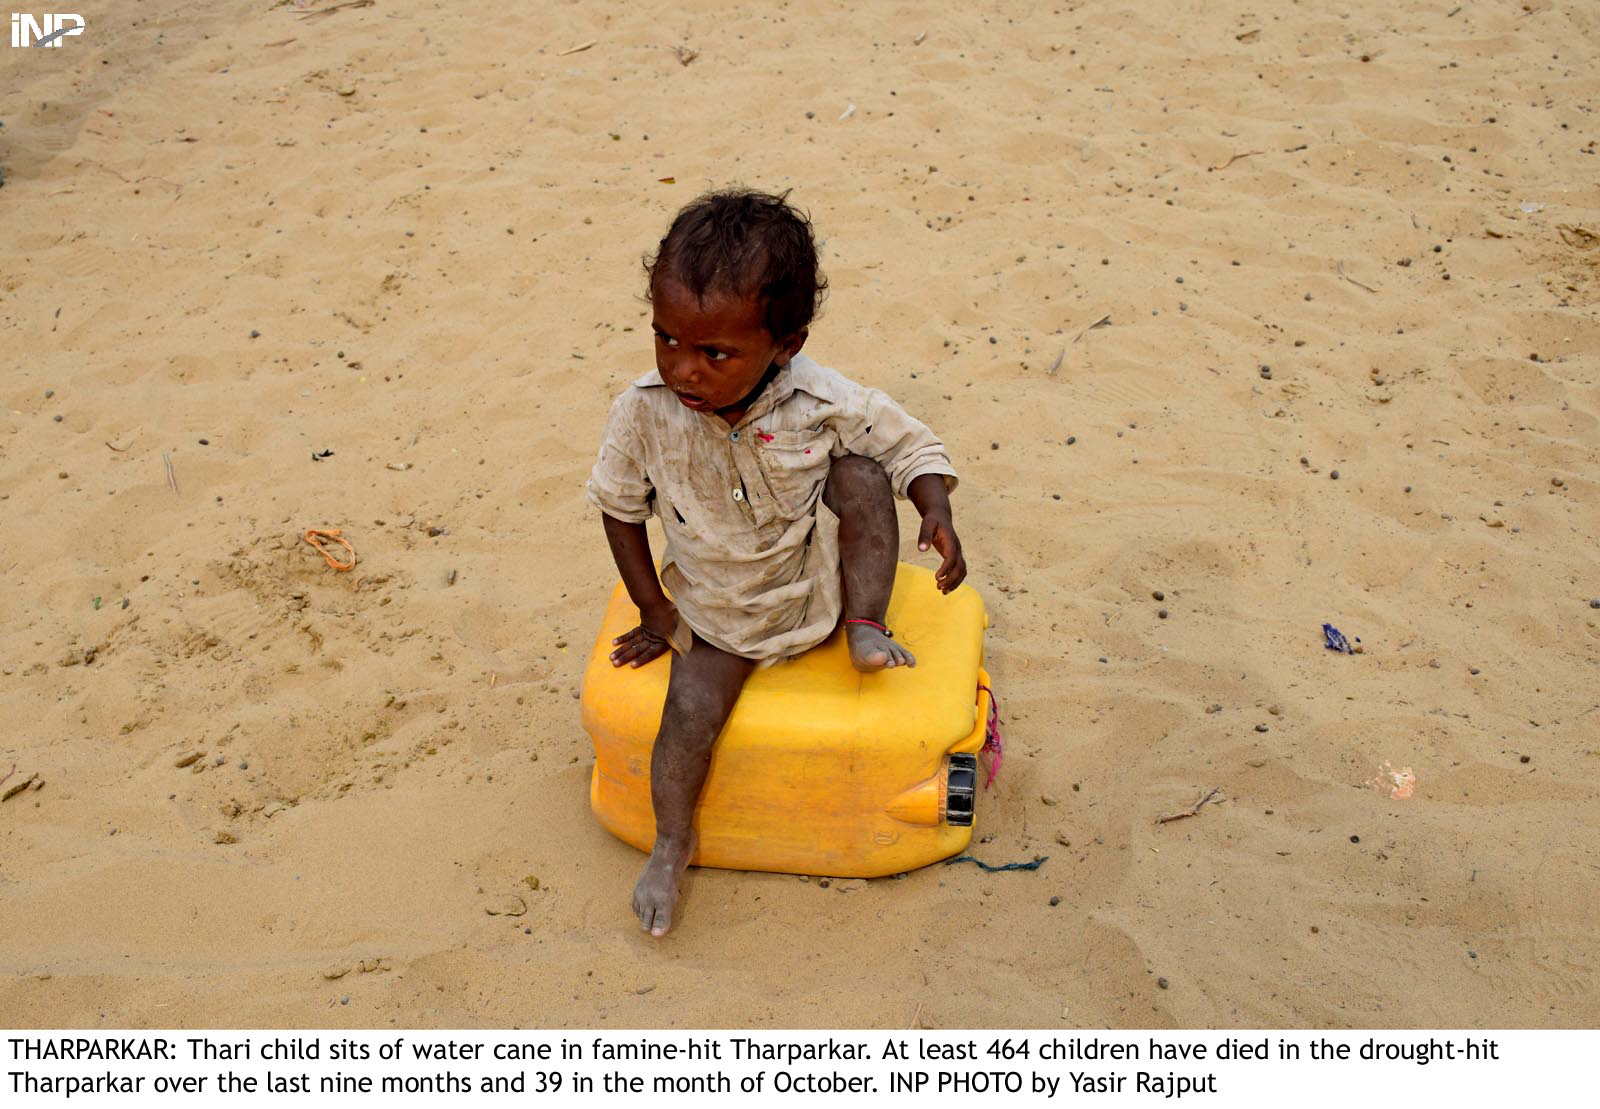 thar commission report likely to remain confidential